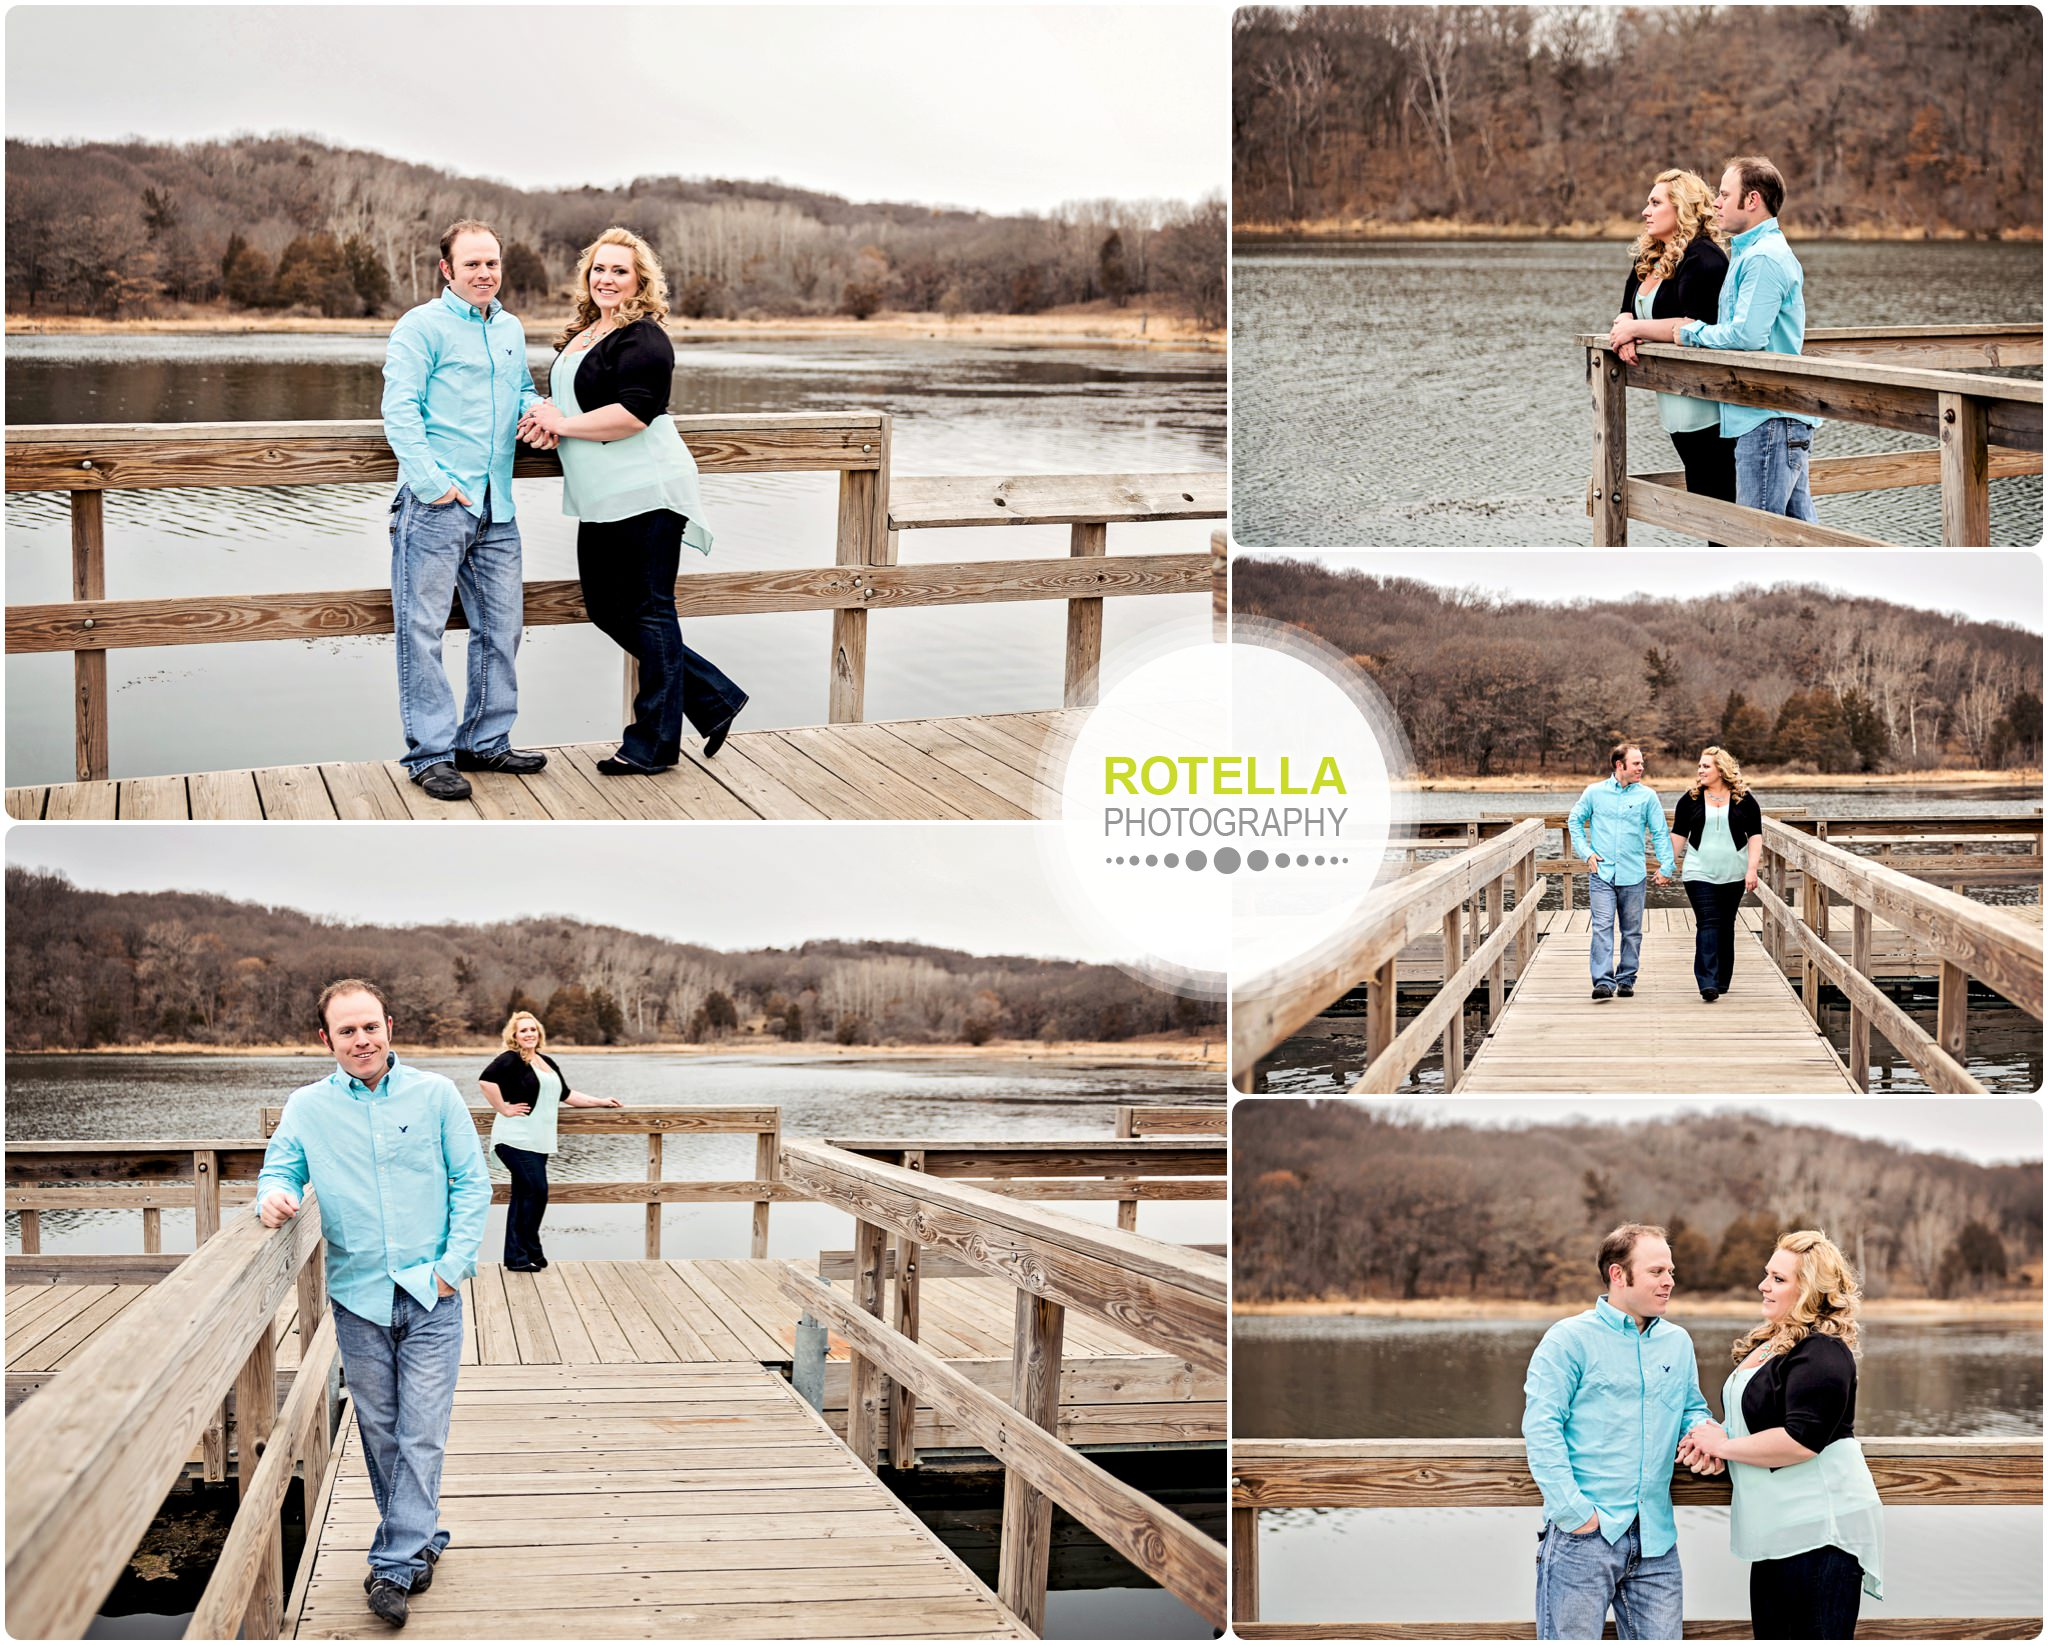 A-M-Minneapolis-Engagement-Photography-Rotella-Photography-2015_0014